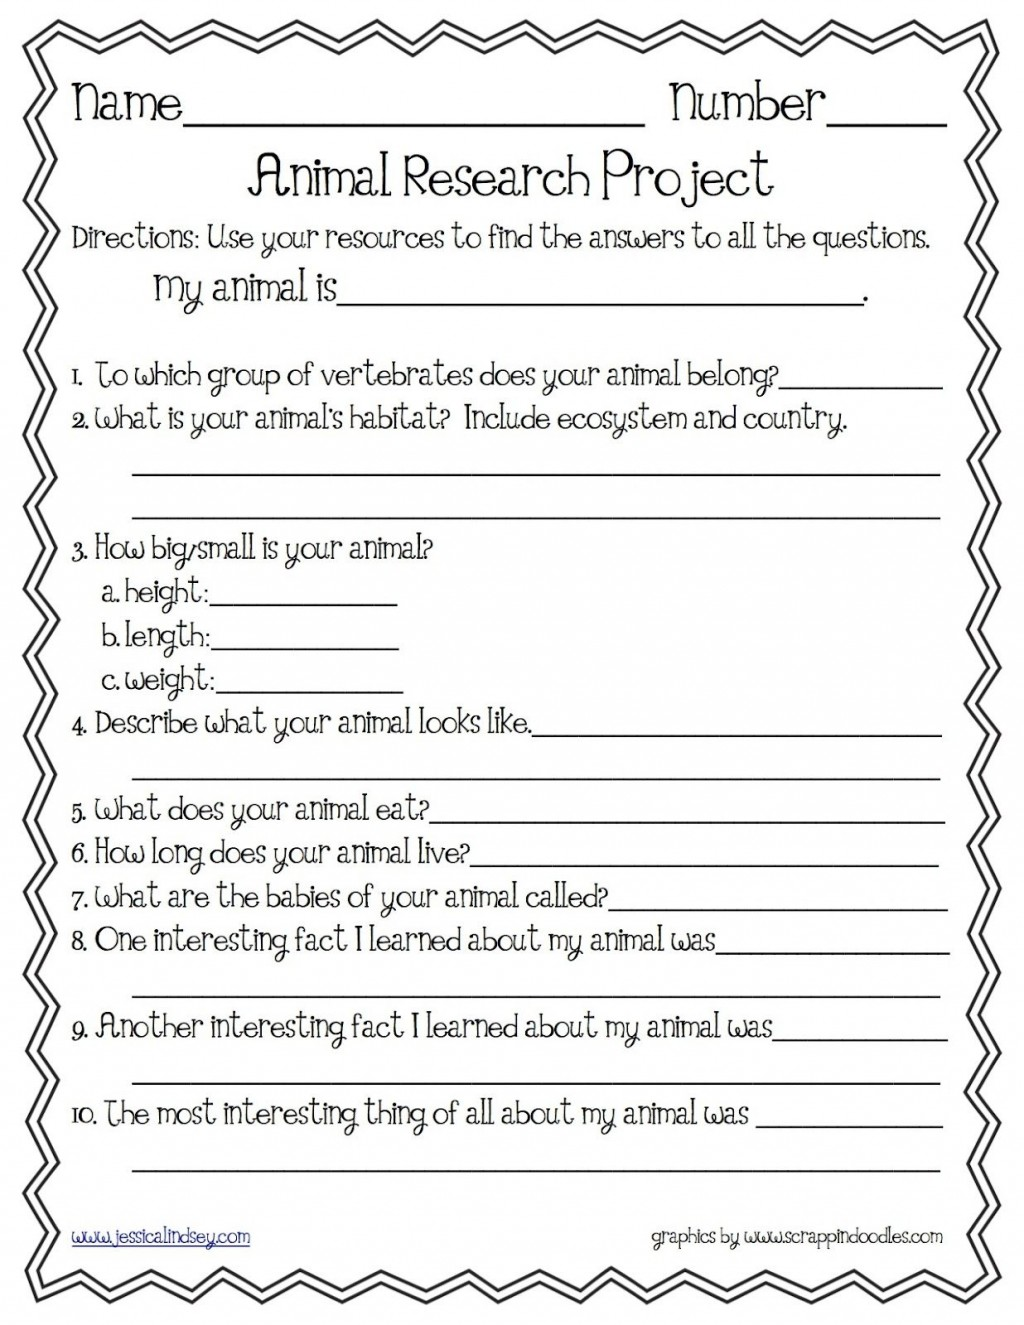 011 Research Paper Animal Striking Topics Behavior Farm Topic Ideas Large